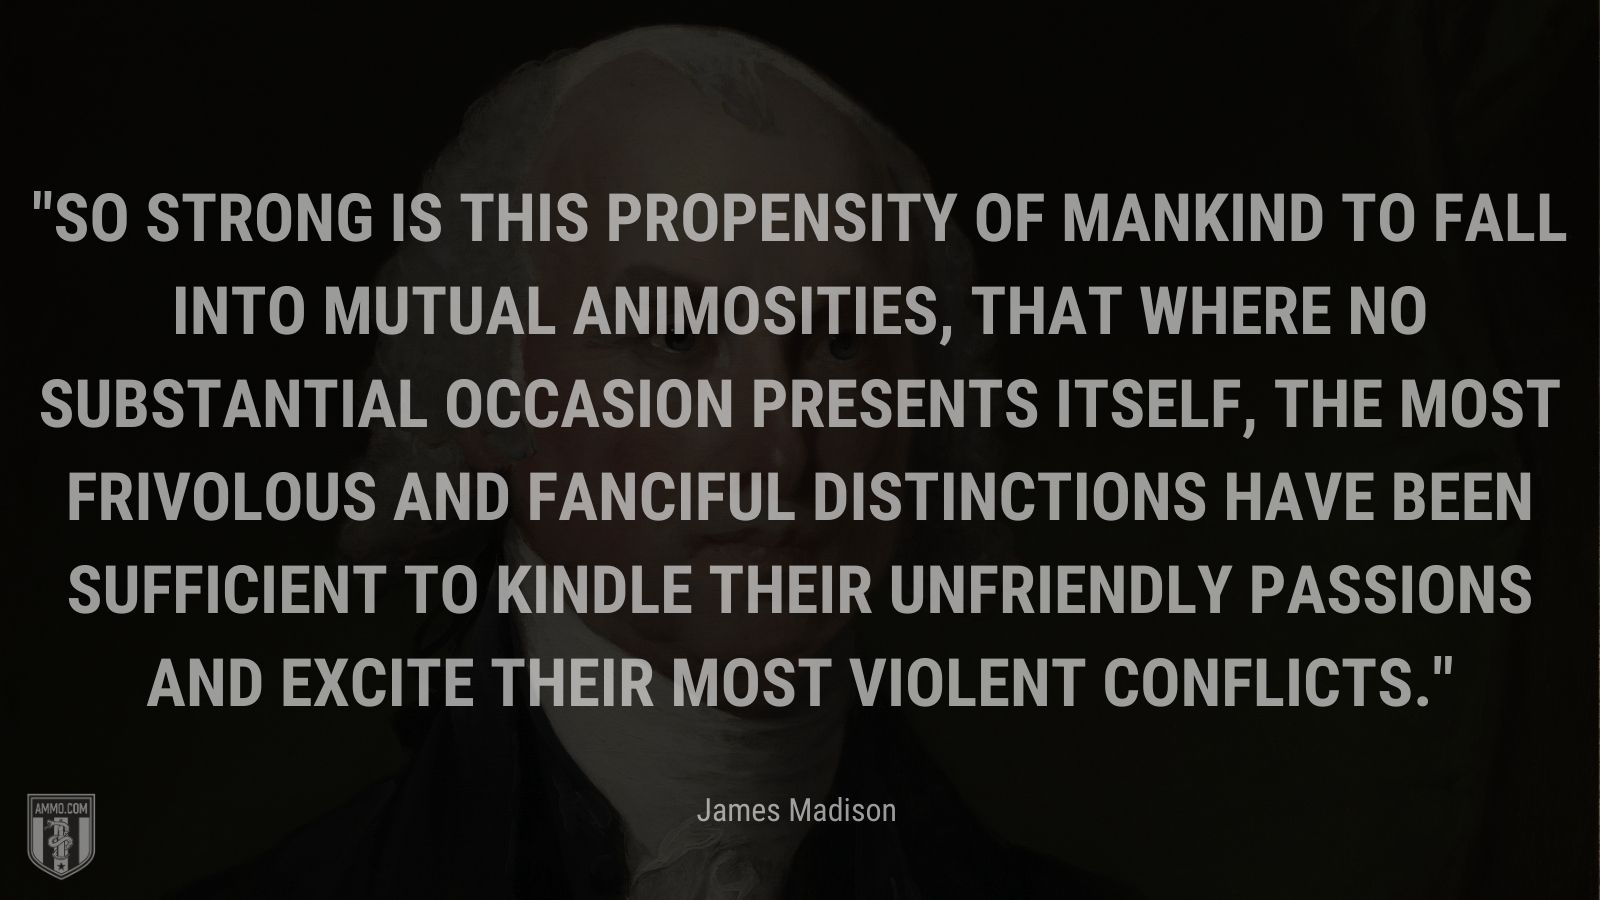 """""""So strong is this propensity of mankind to fall into mutual animosities, that where no substantial occasion presents itself, the most frivolous and fanciful distinctions have been sufficient to kindle their unfriendly passions and excite their most violent conflicts."""" - James Madison"""